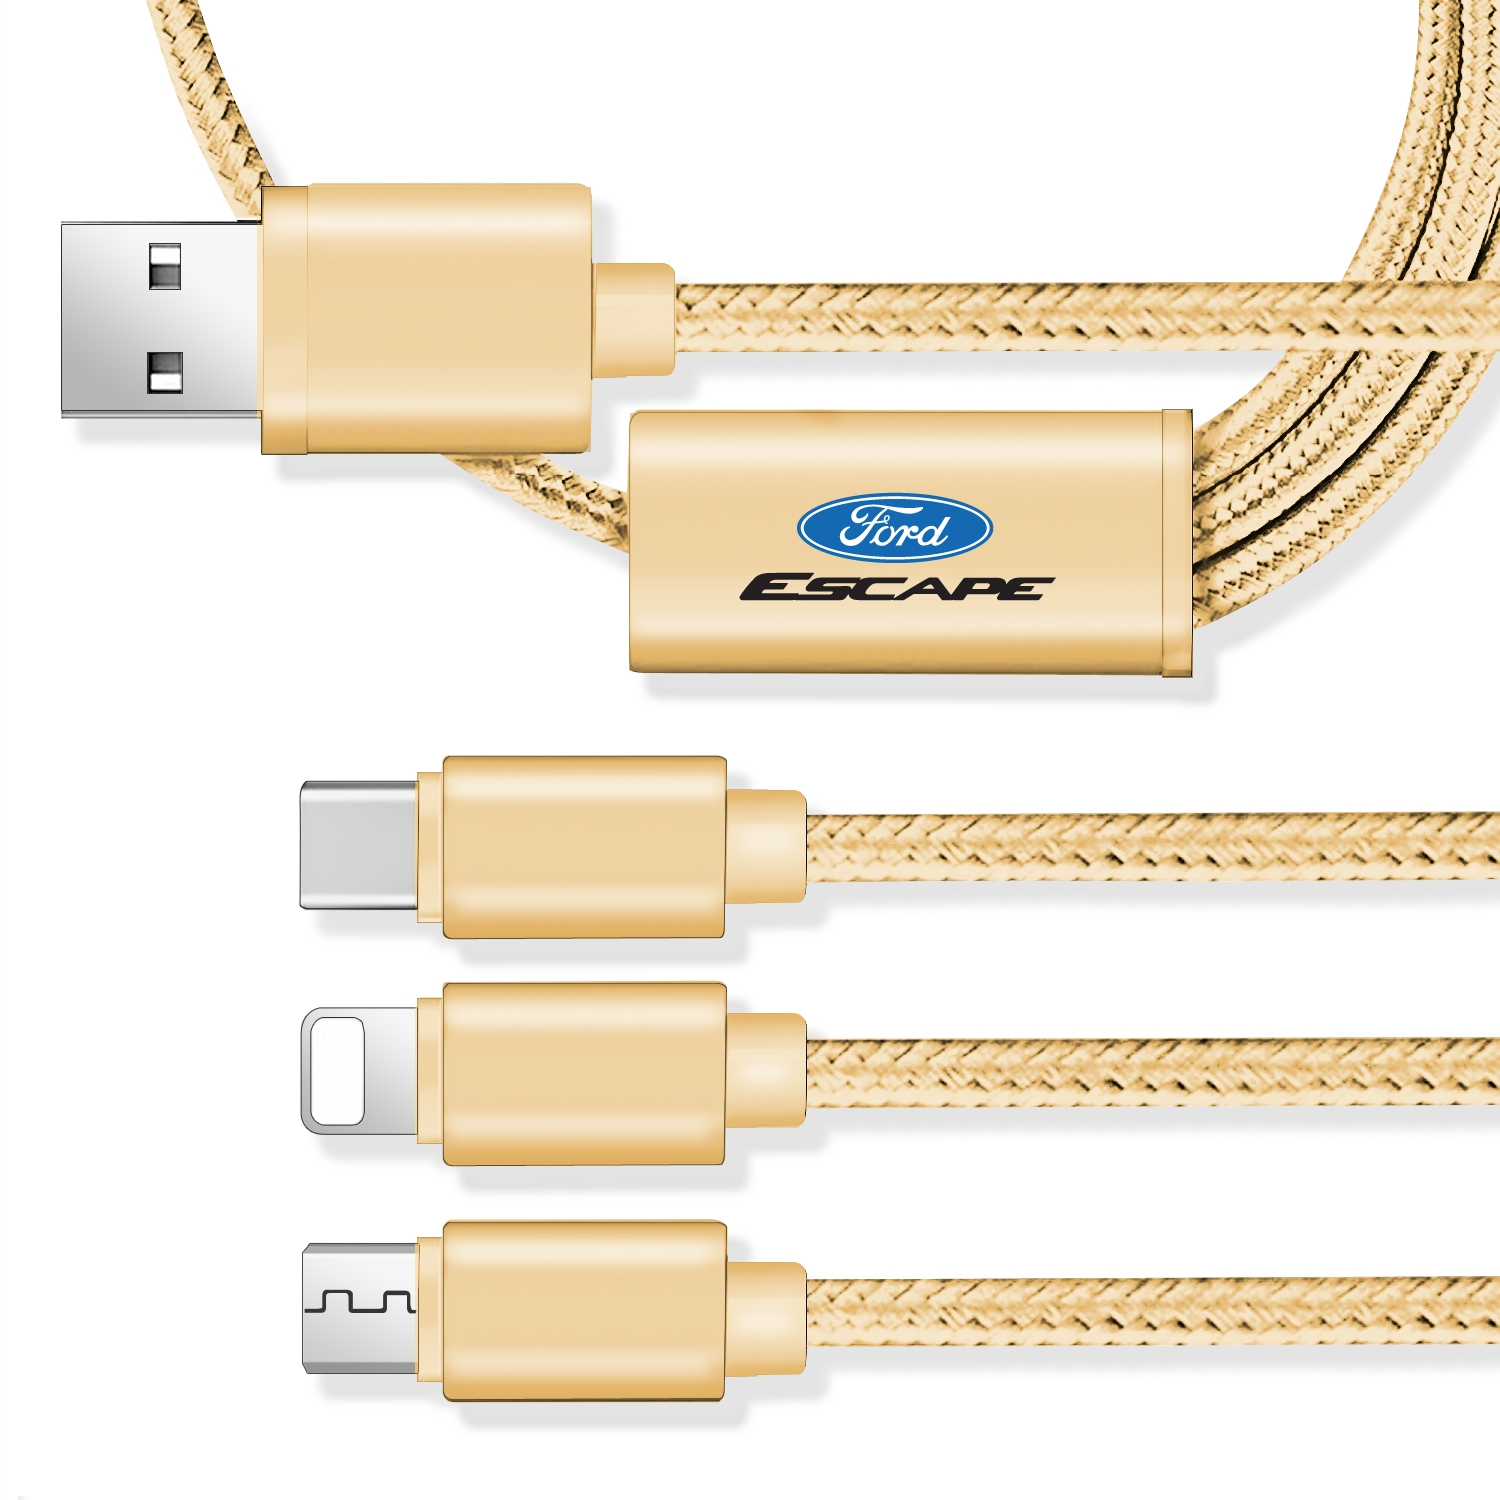 Ford Escape 3 in 1 Golden 4 Ft Premium Multi Charging Cord USB Cable